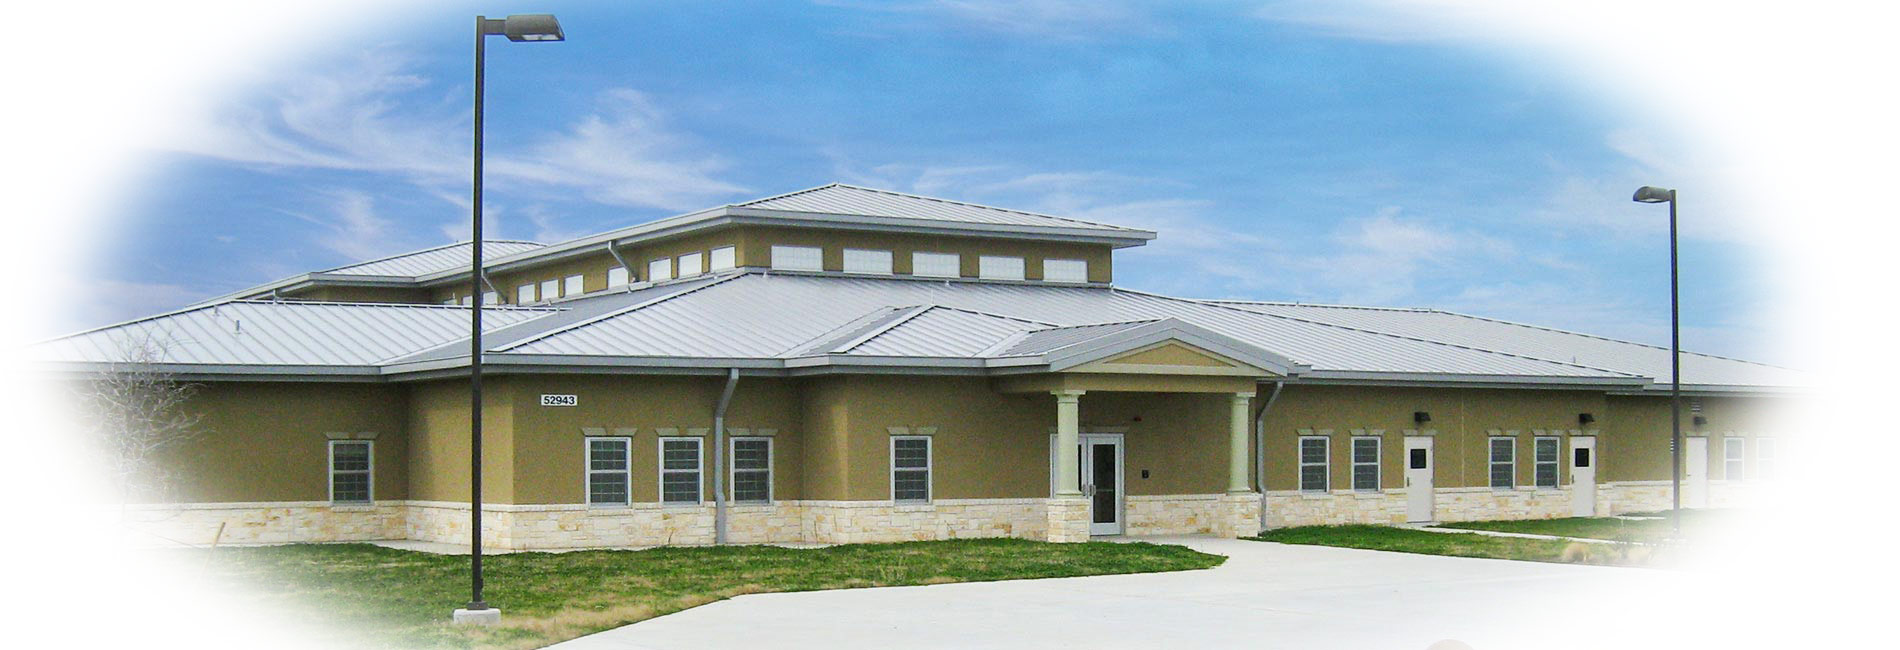 Fort Hood Child Development Centers